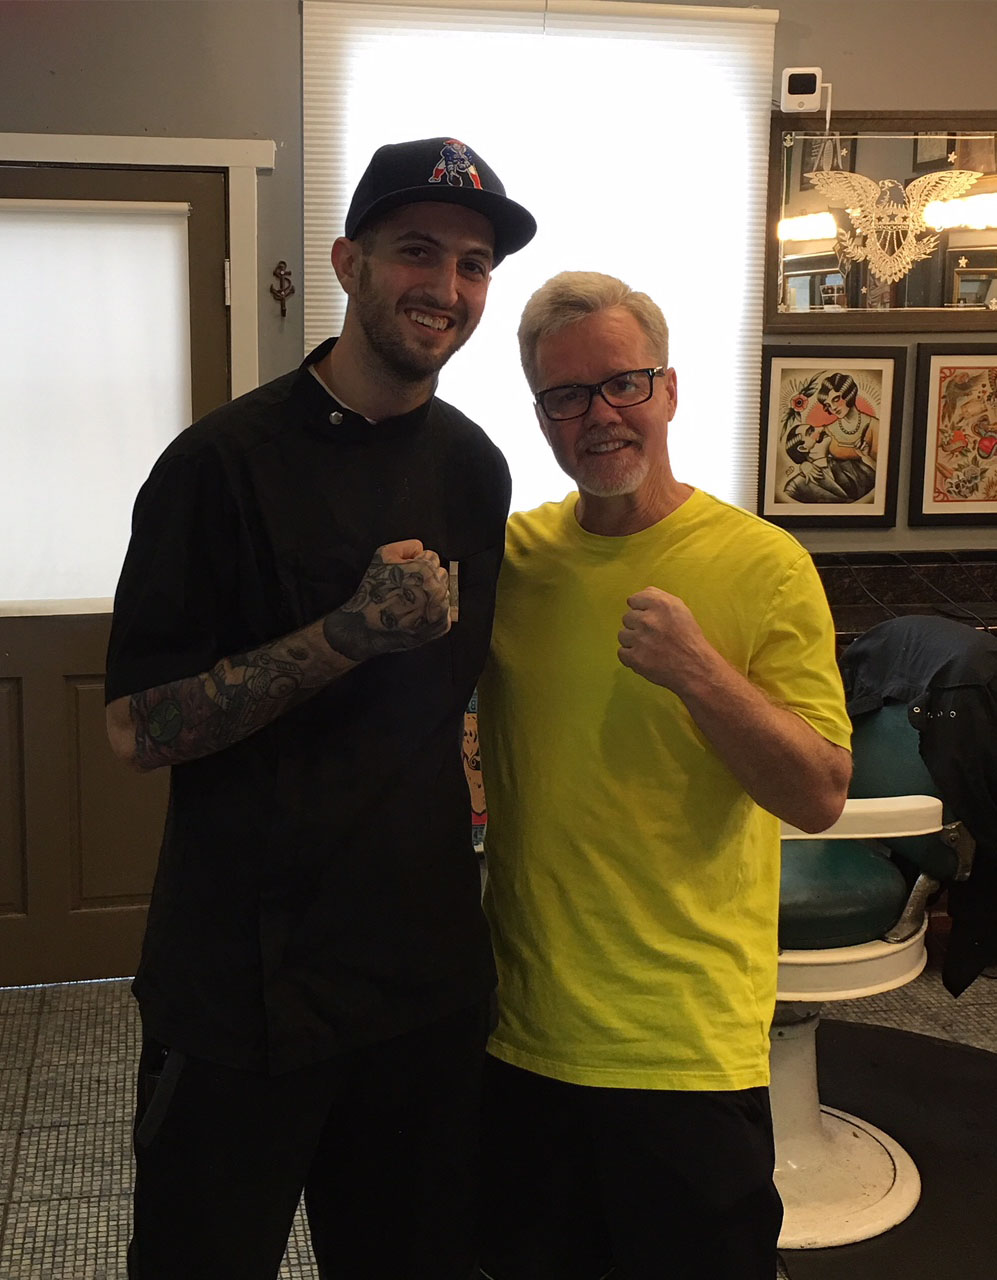 Freddie Roach - Manny Pacquiao's Trainer